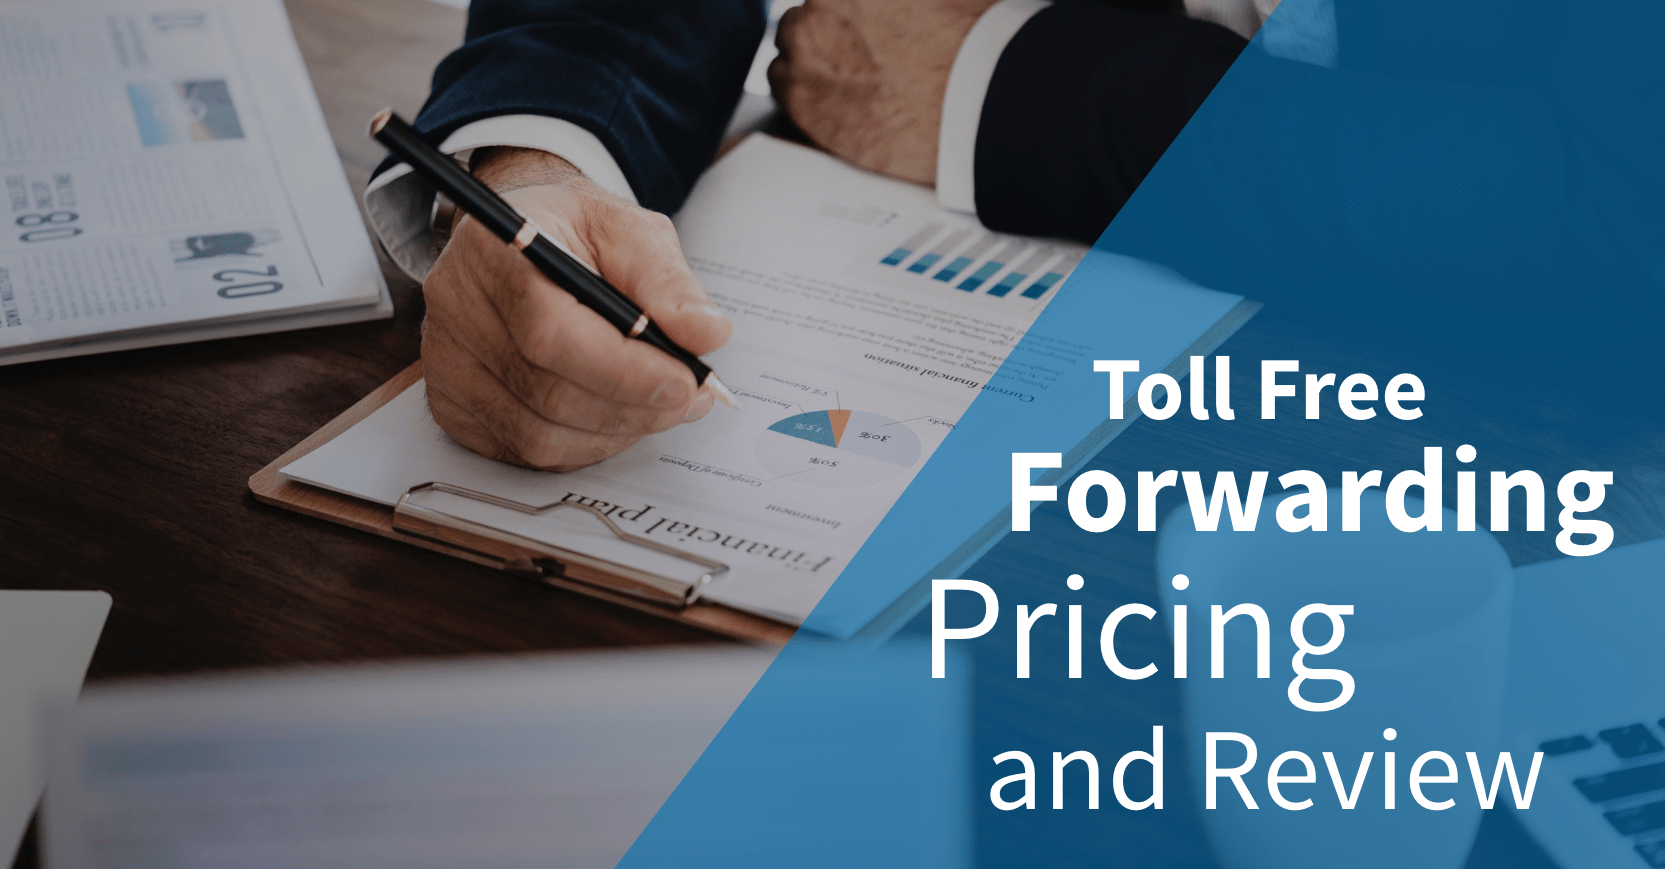 TollFreeForwarding Pricing and Review Banner